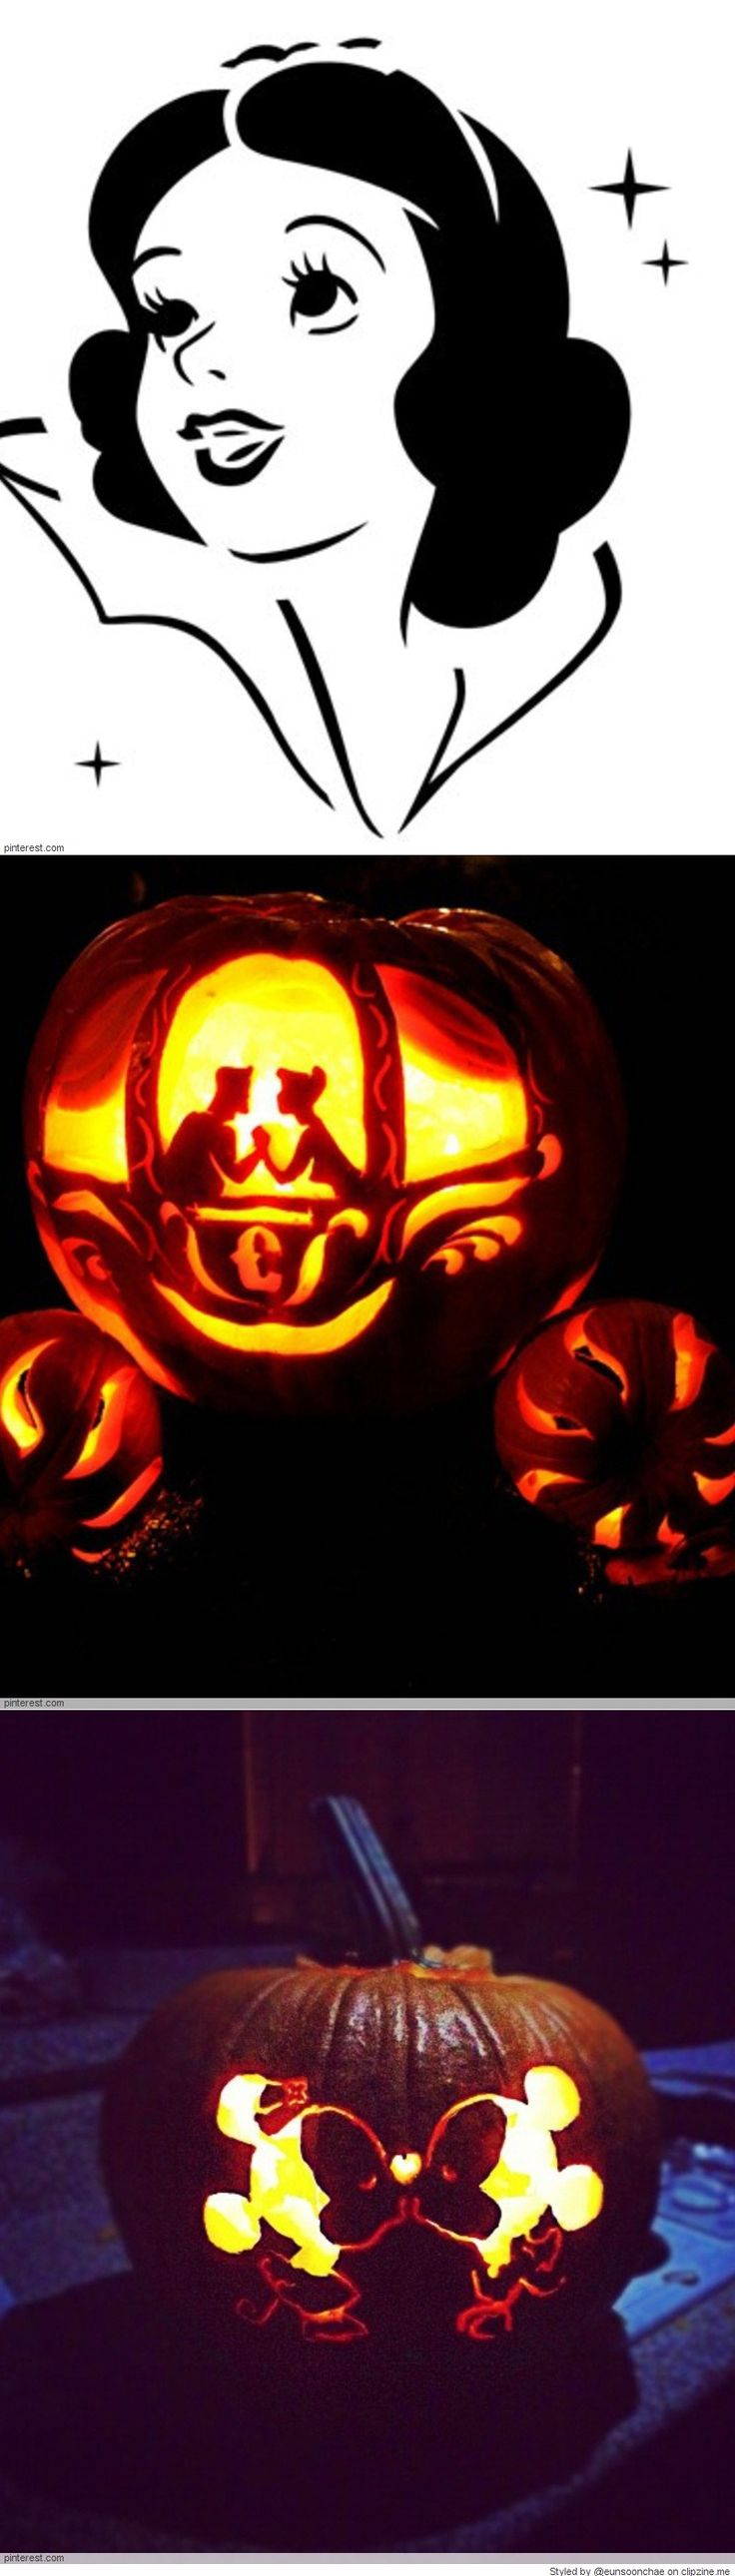 Best disney pumpkin carving ideas on pinterest